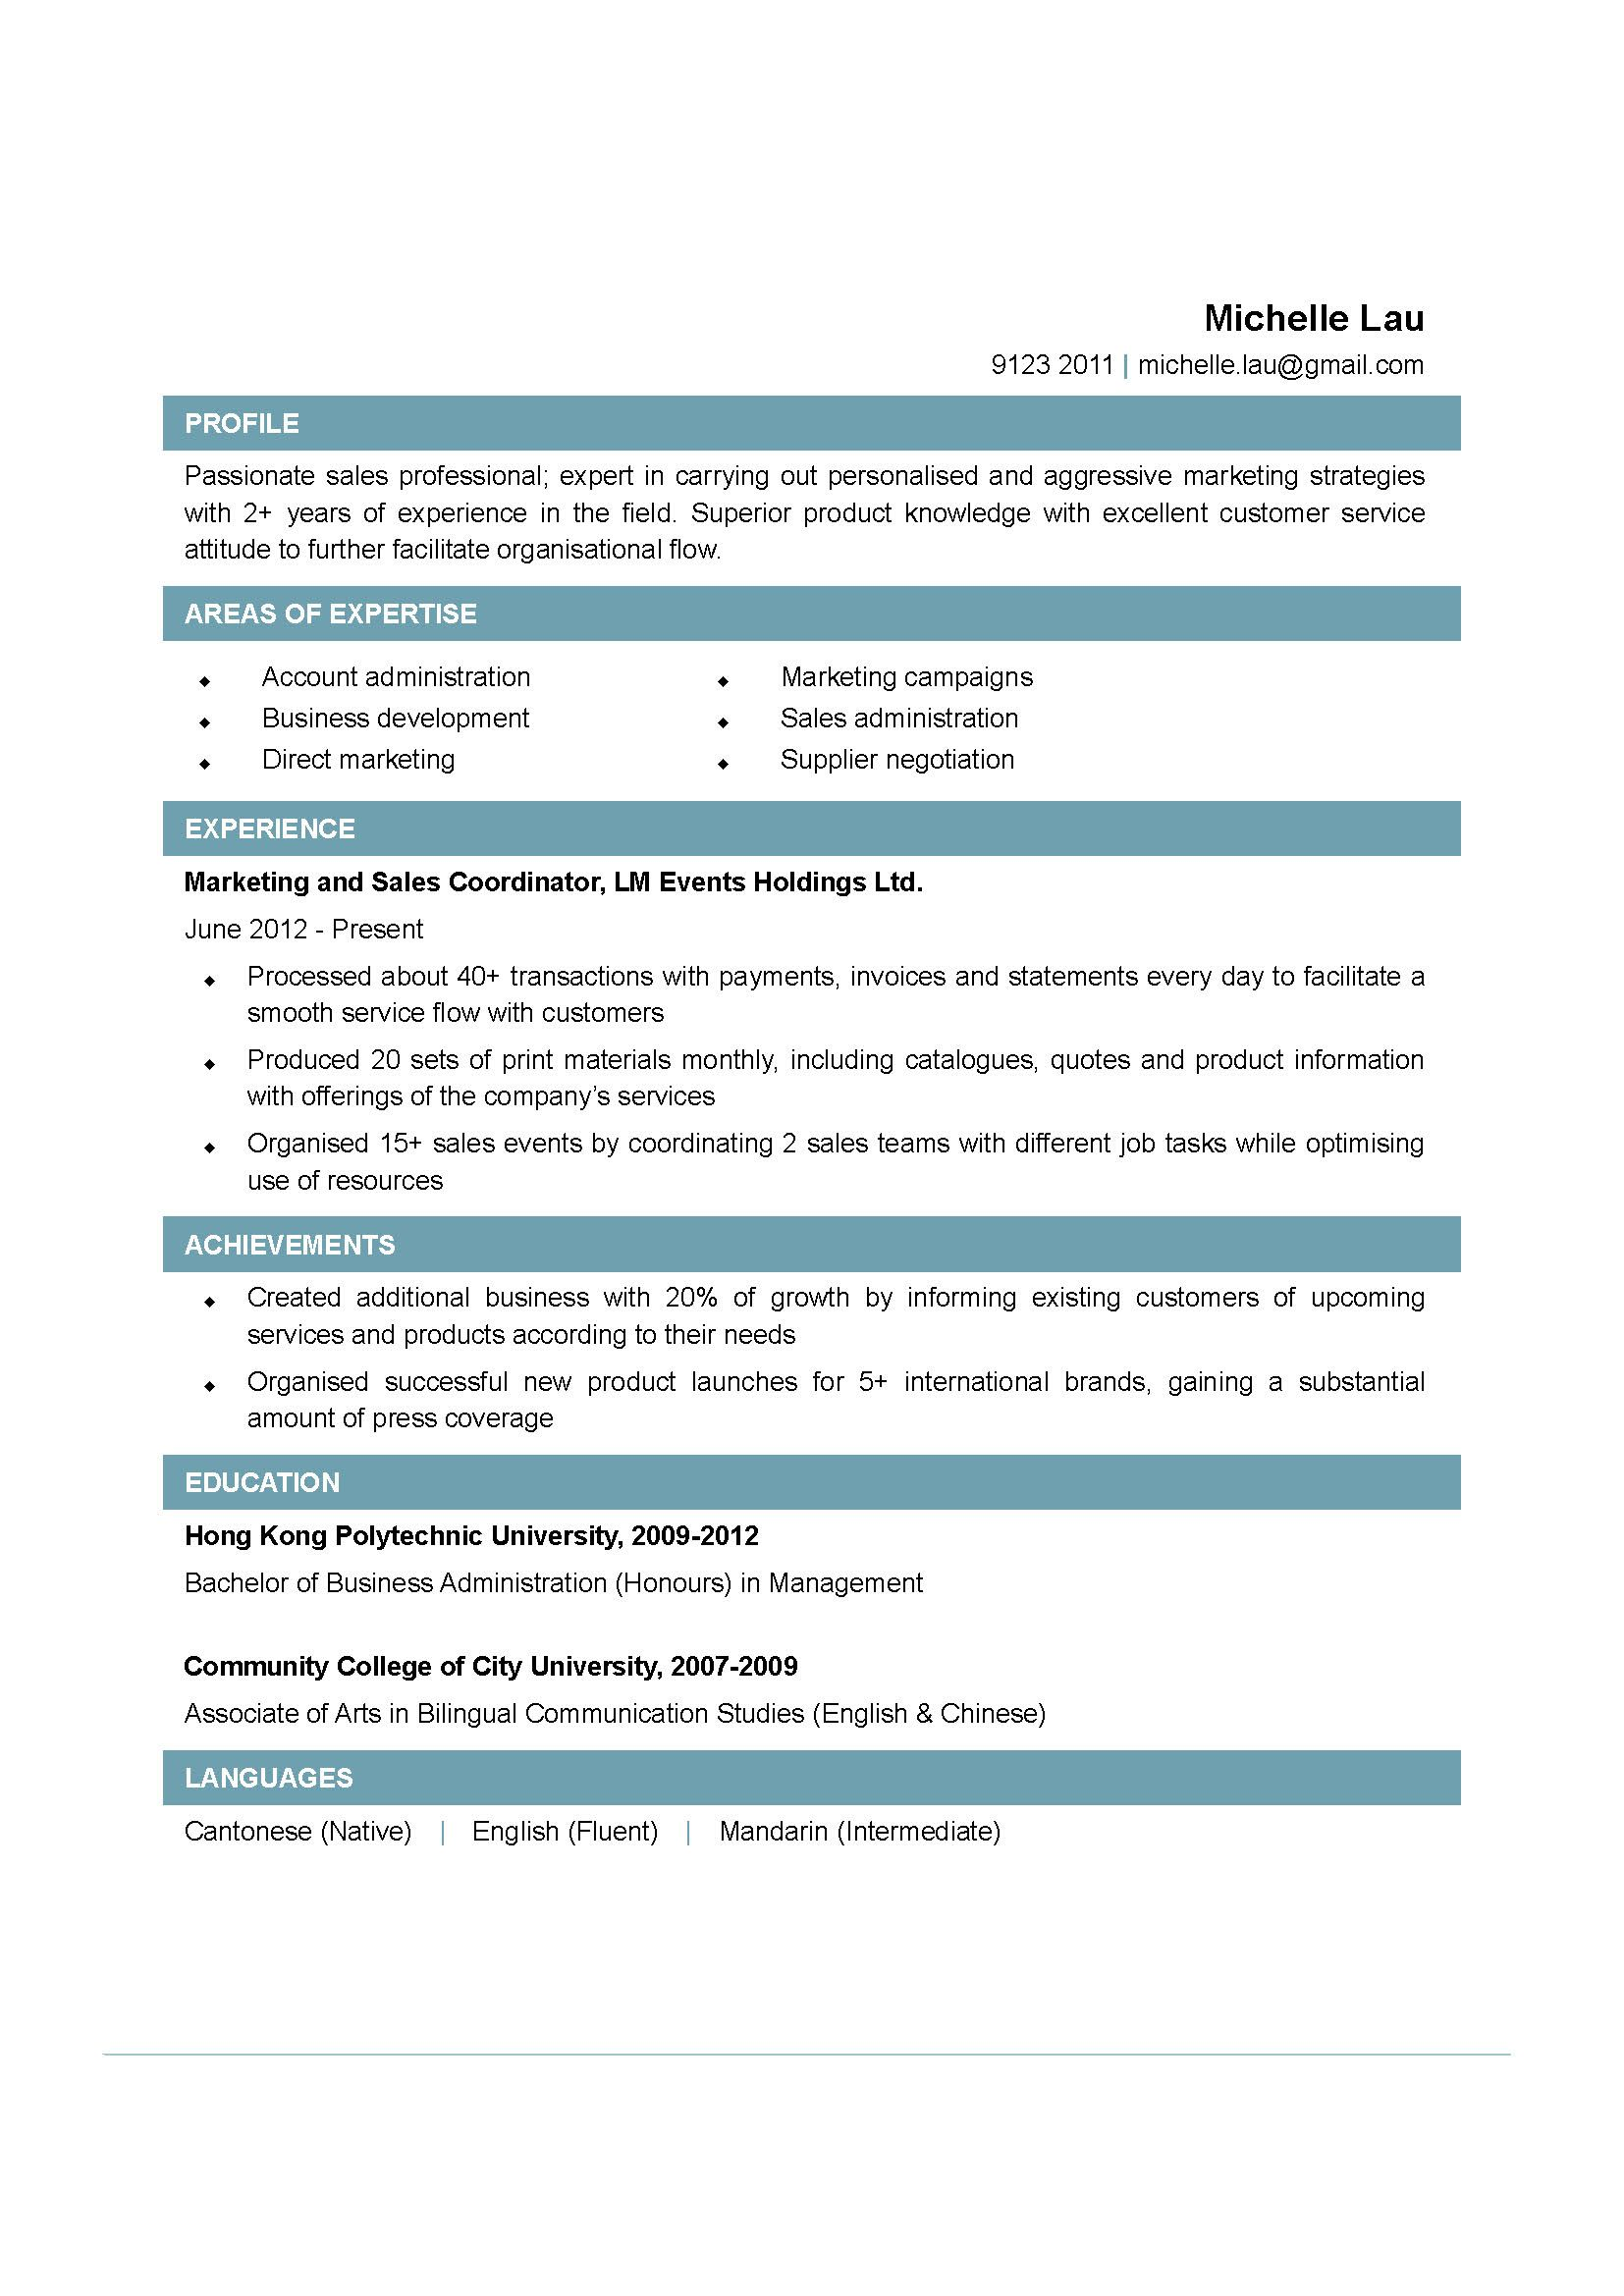 Resume Format Samples Sample Bank Teller Resume Entry Level  Httpwwwjobresume